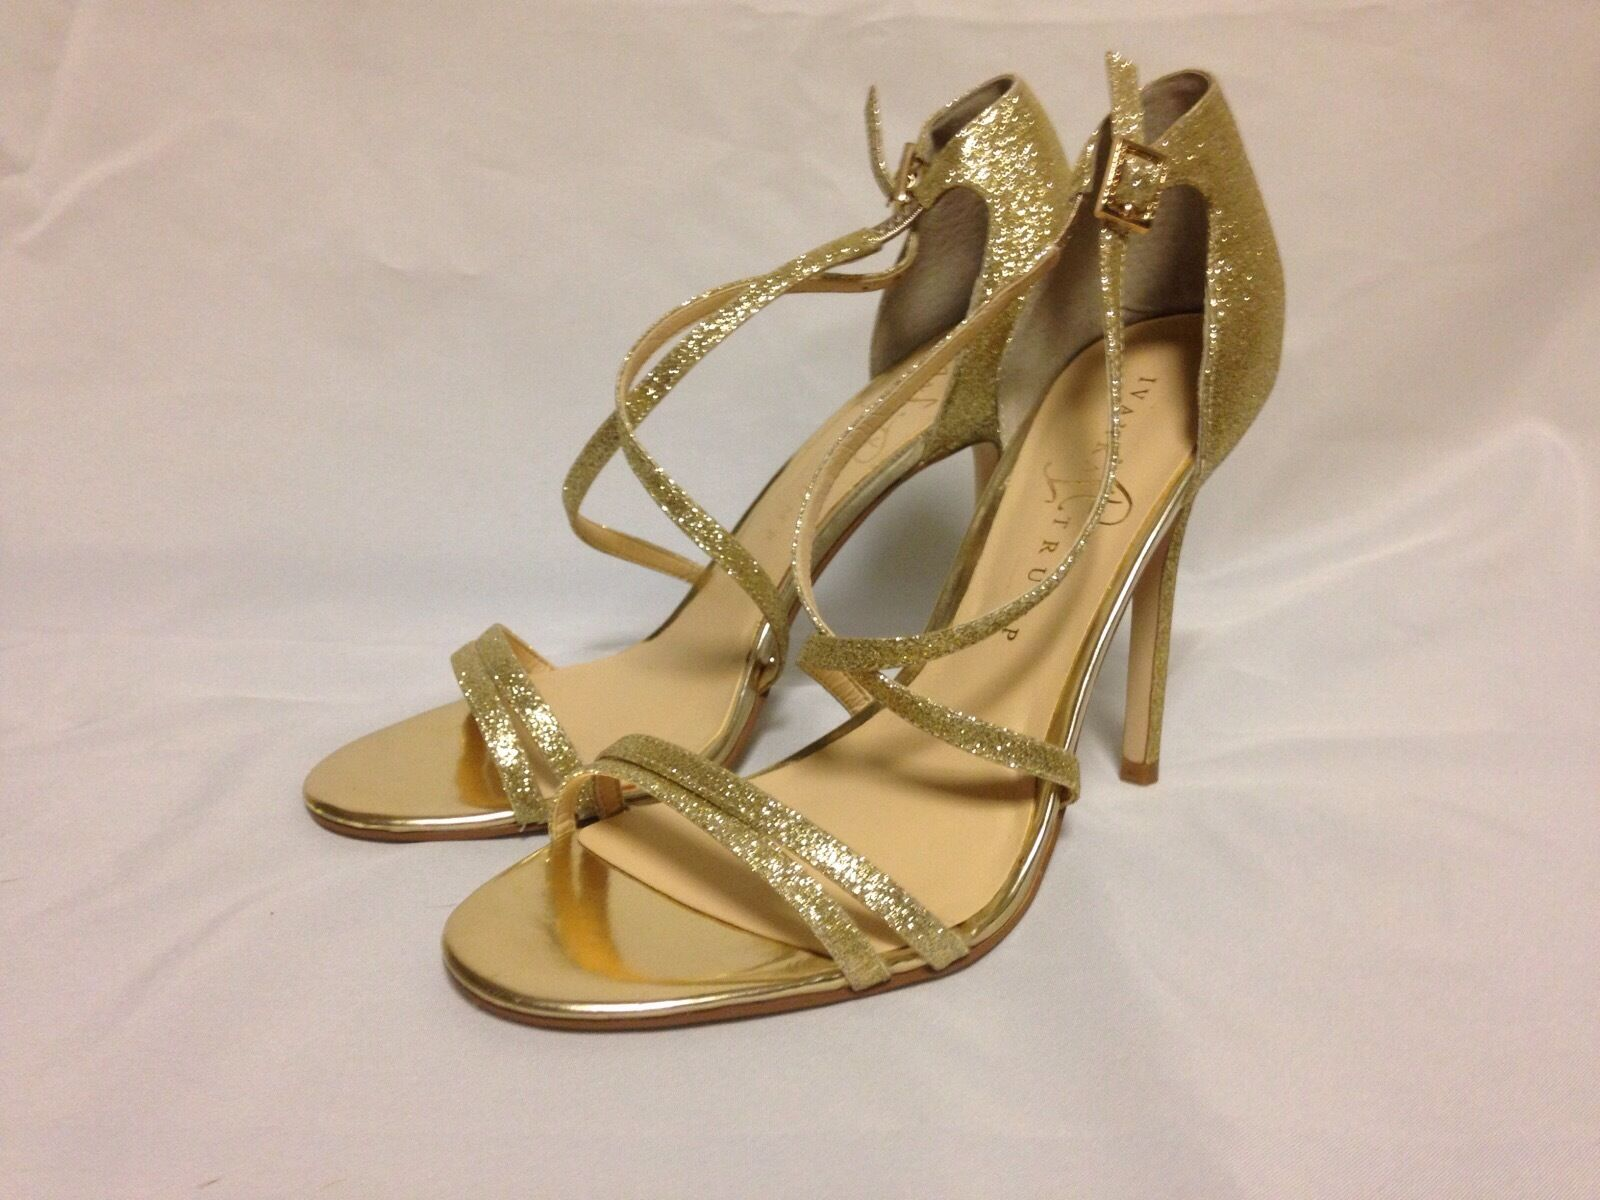 Ivanka Trump Duchess2 Strappy Sandal 8 M gold Texture Leather  New with Defects